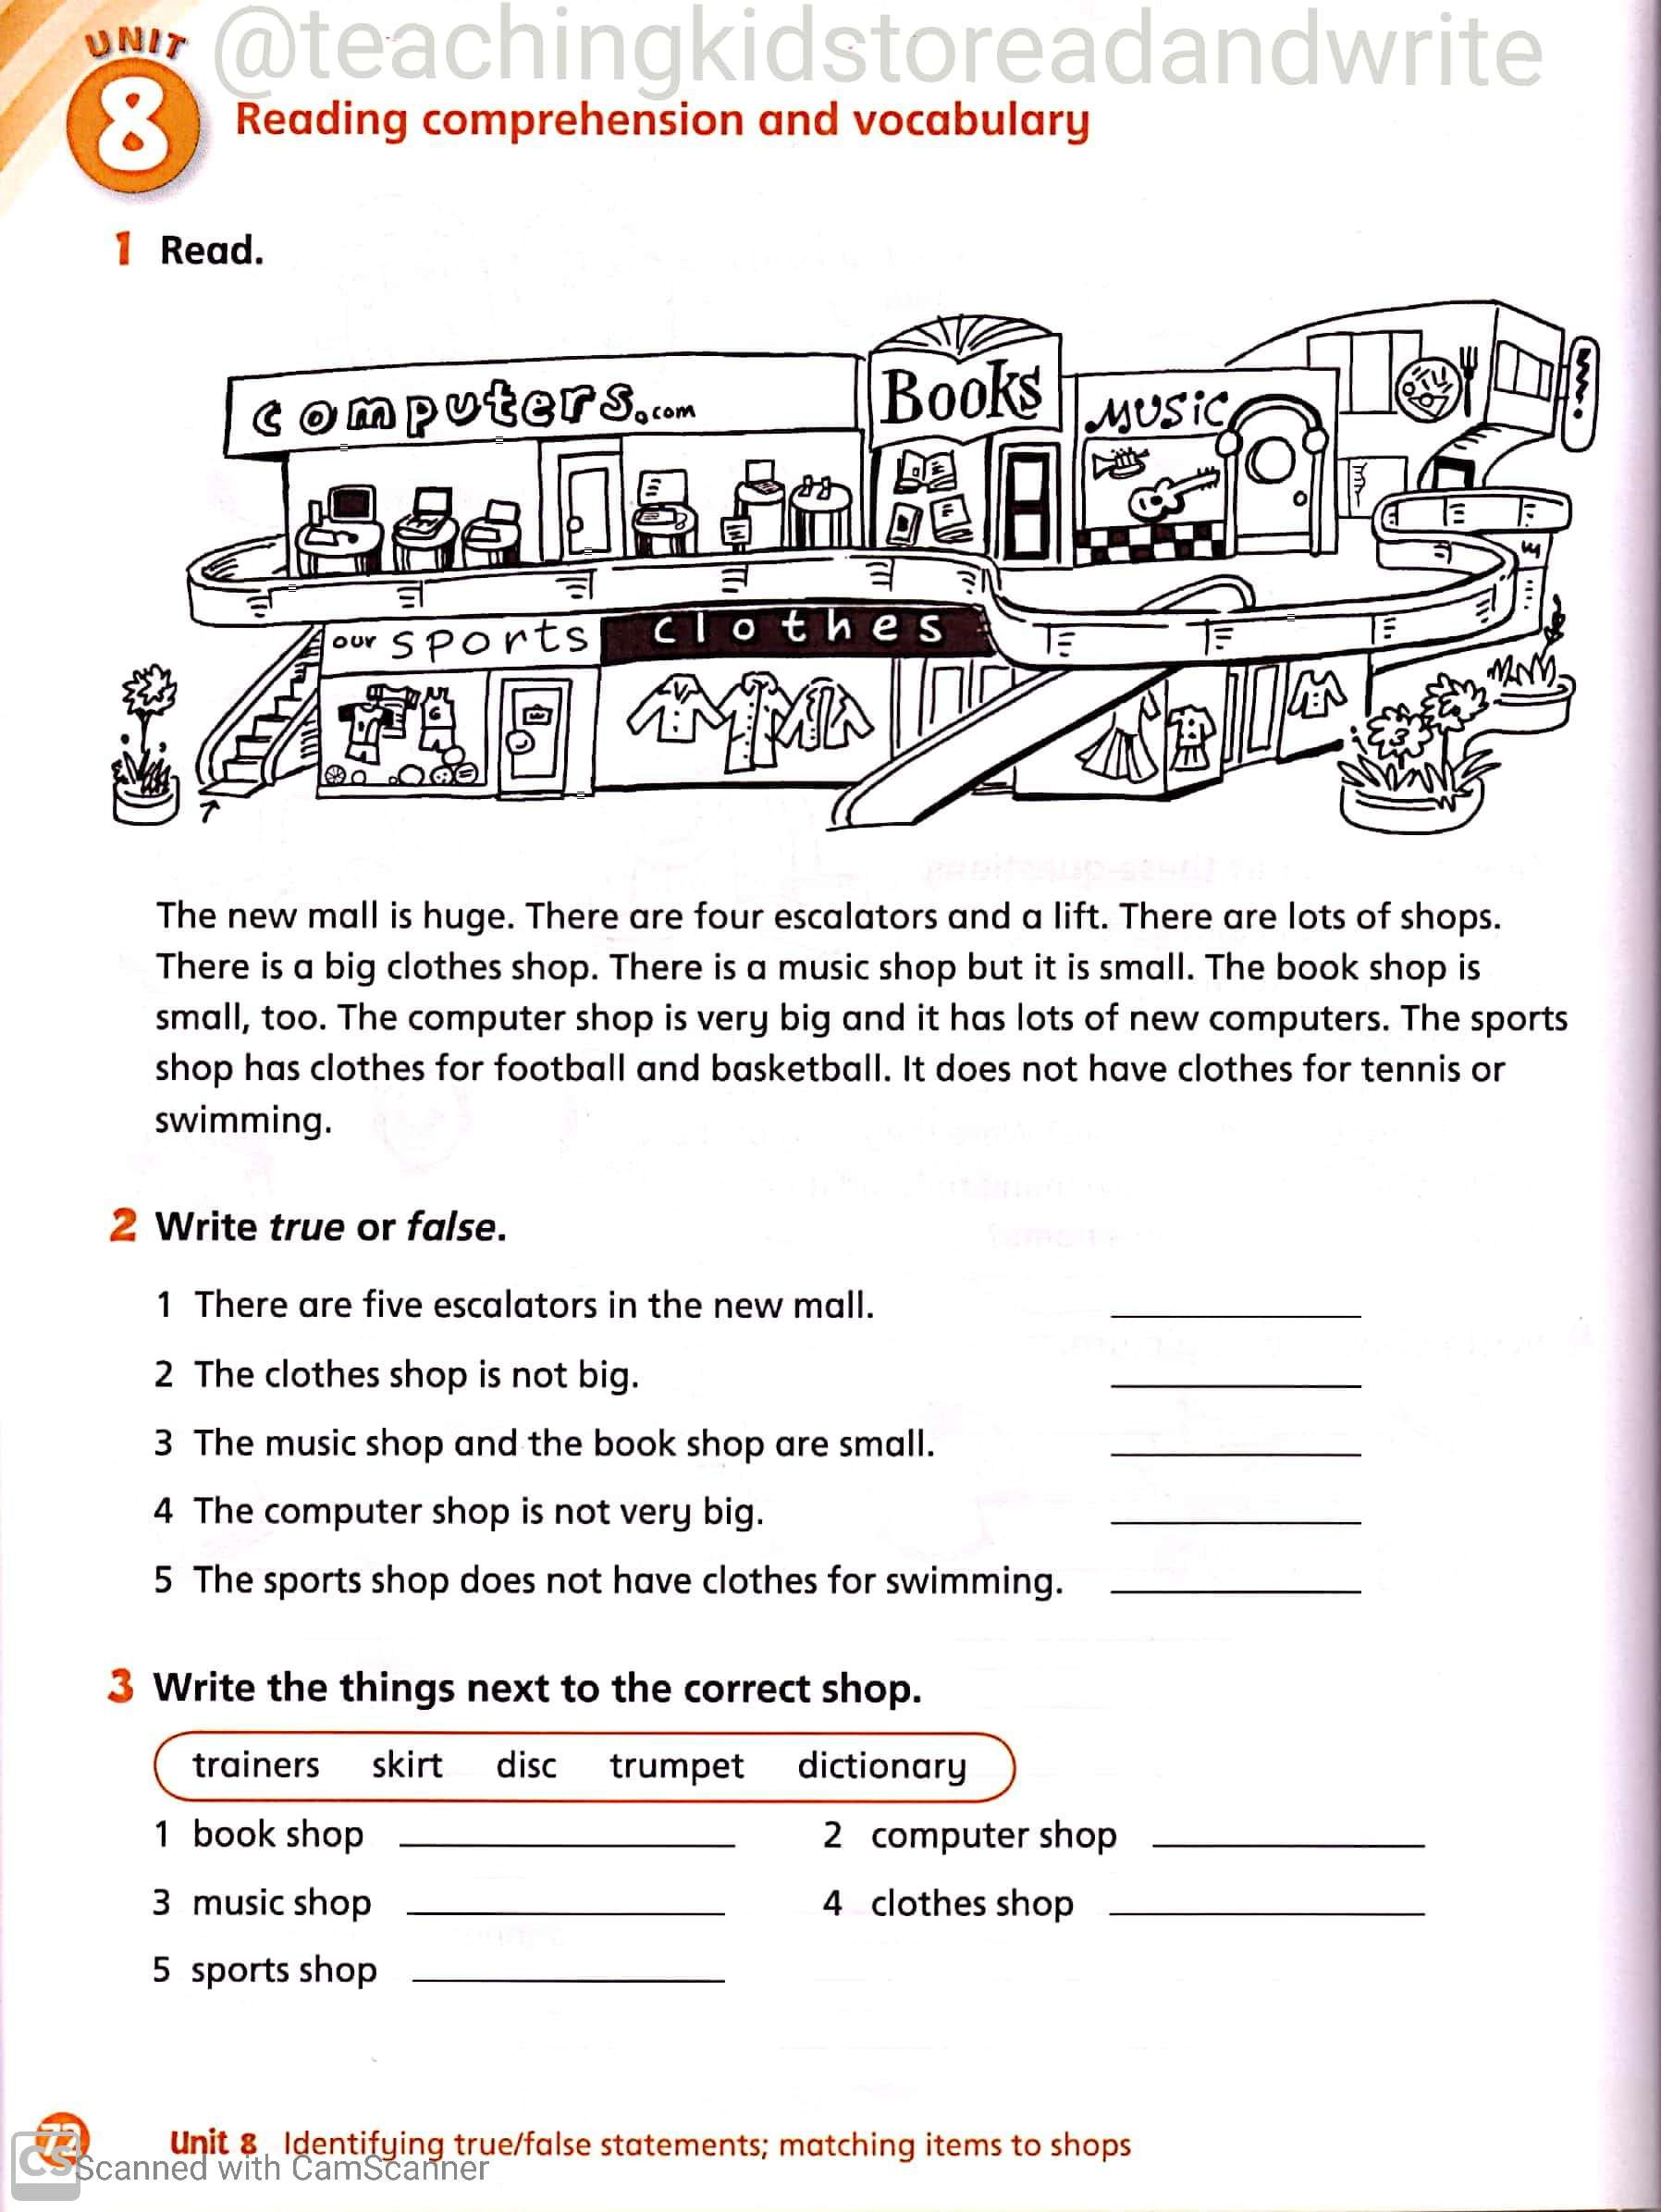 hight resolution of English Worksheets for Grade 3 – Teaching Kids to Read and Write